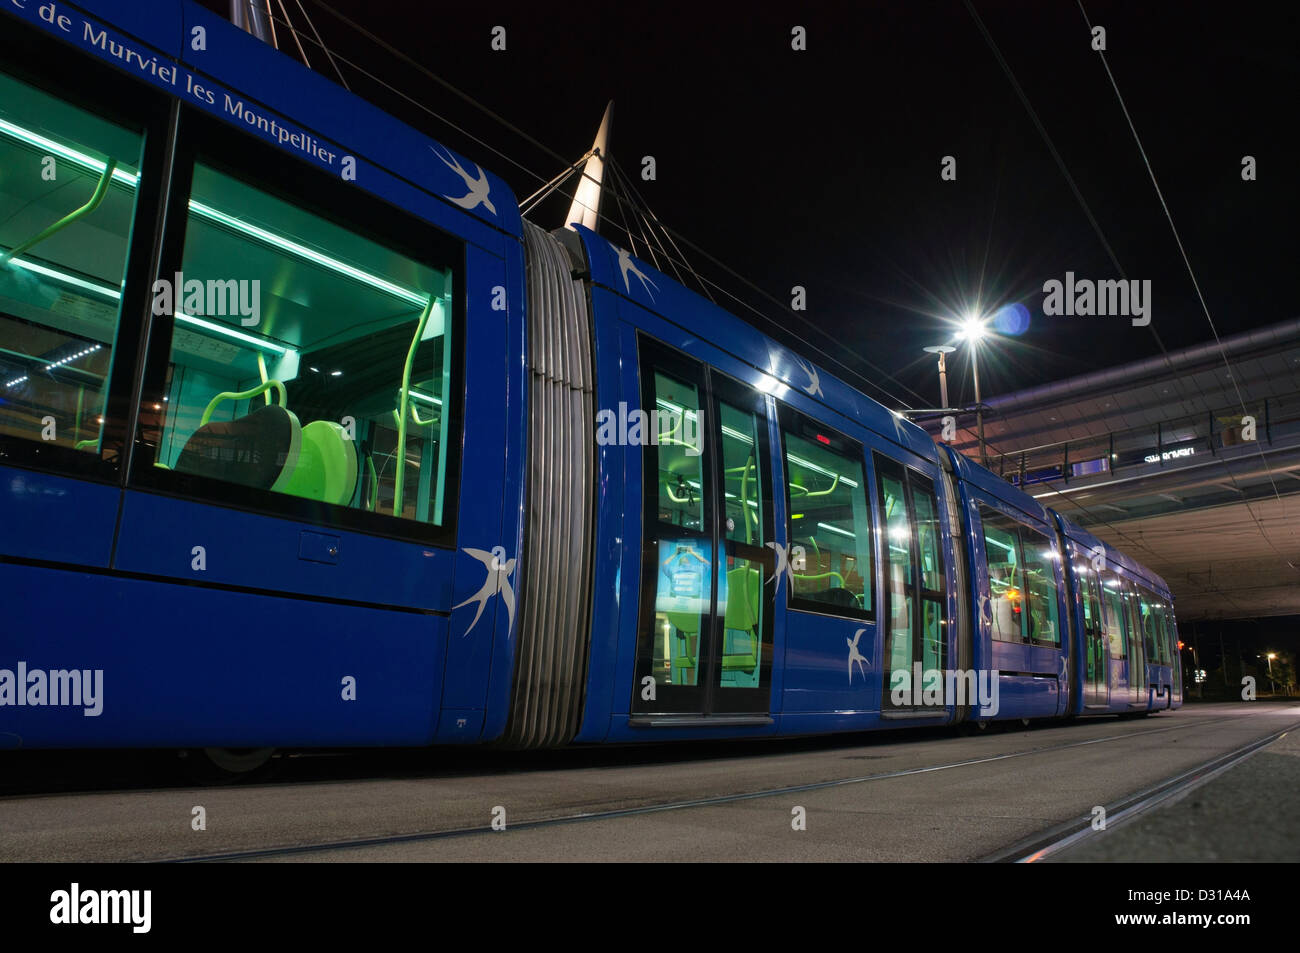 Tram at the quay, at night, Montpellier, France Stock Photo